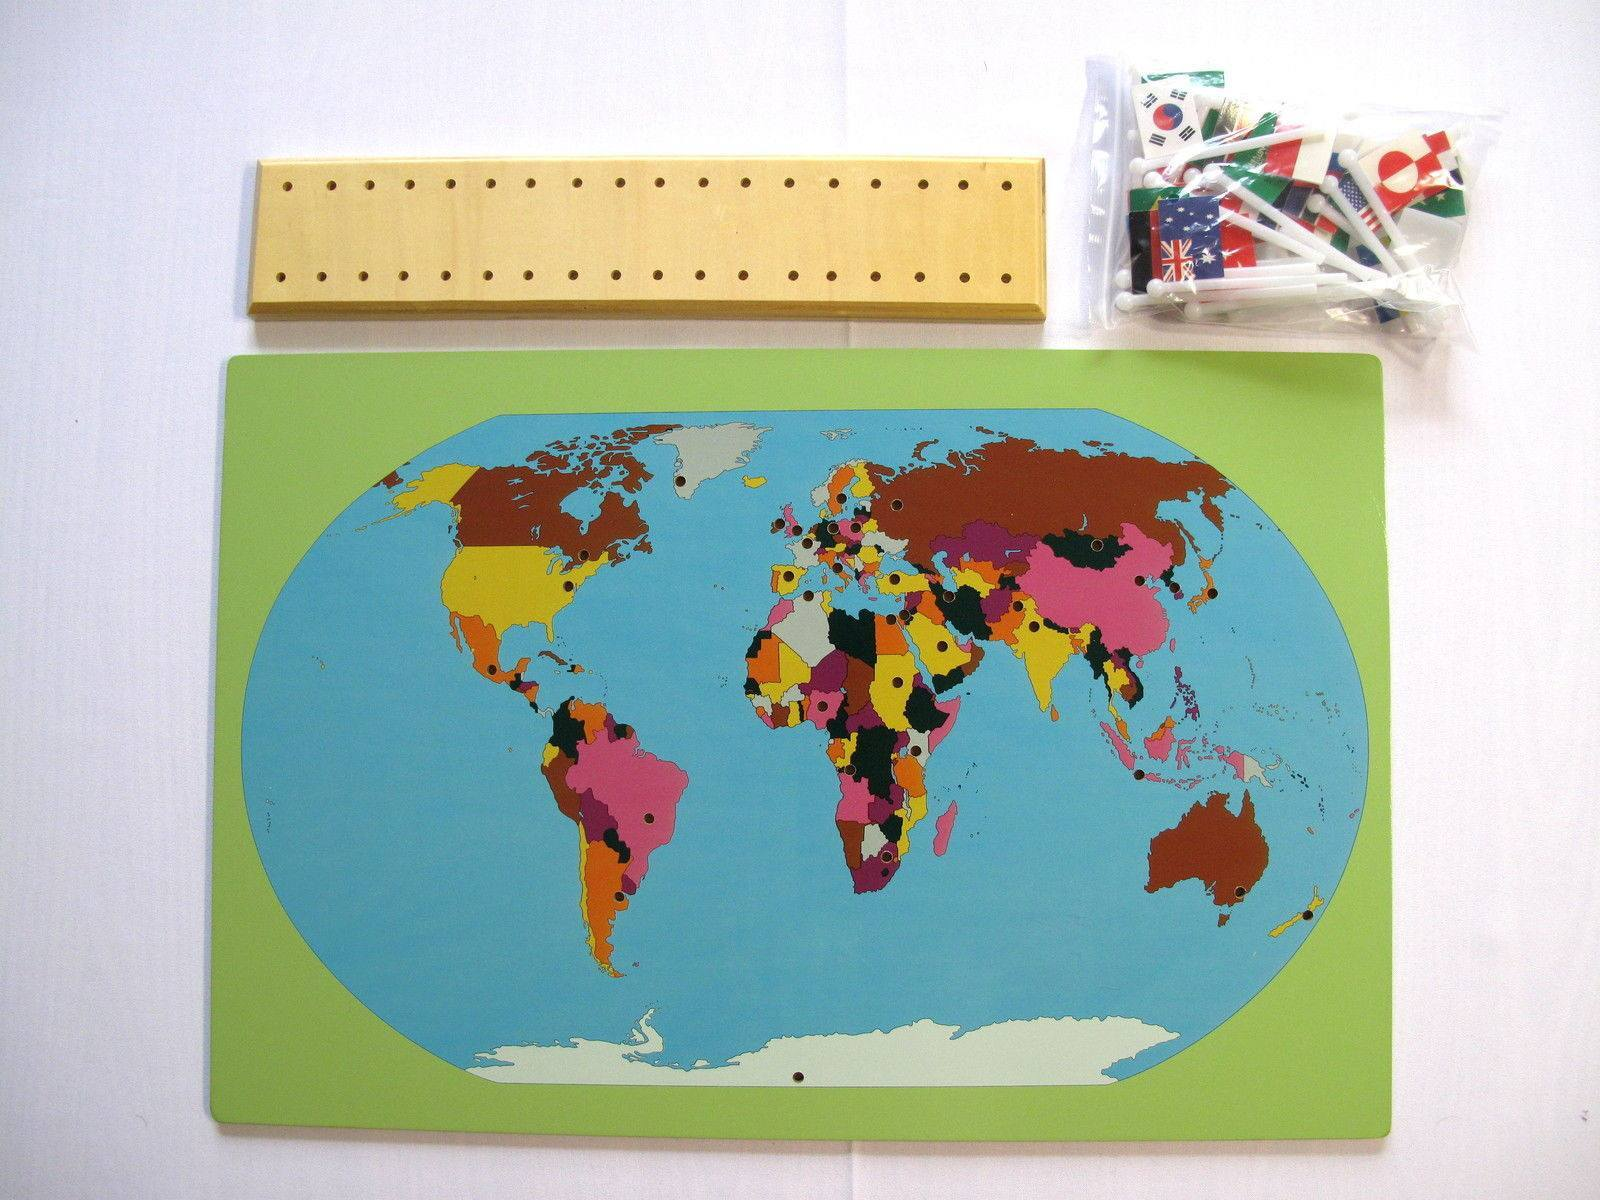 Map Of World Flags.Montessori Map With World Flags Righttolearn Com Sg